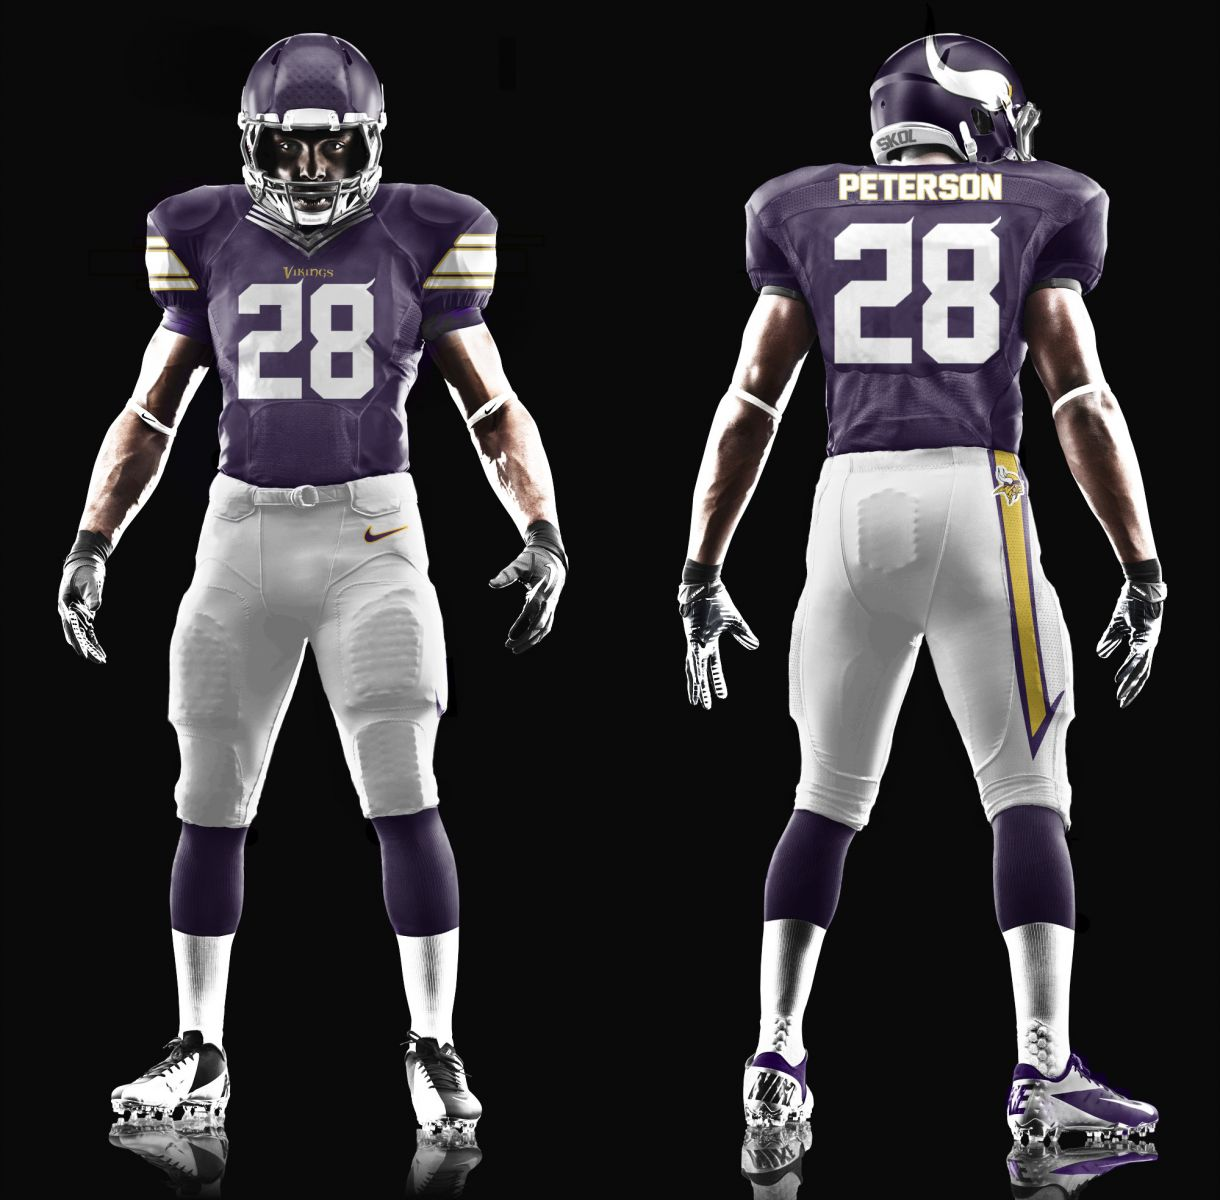 New Vikings uniform design